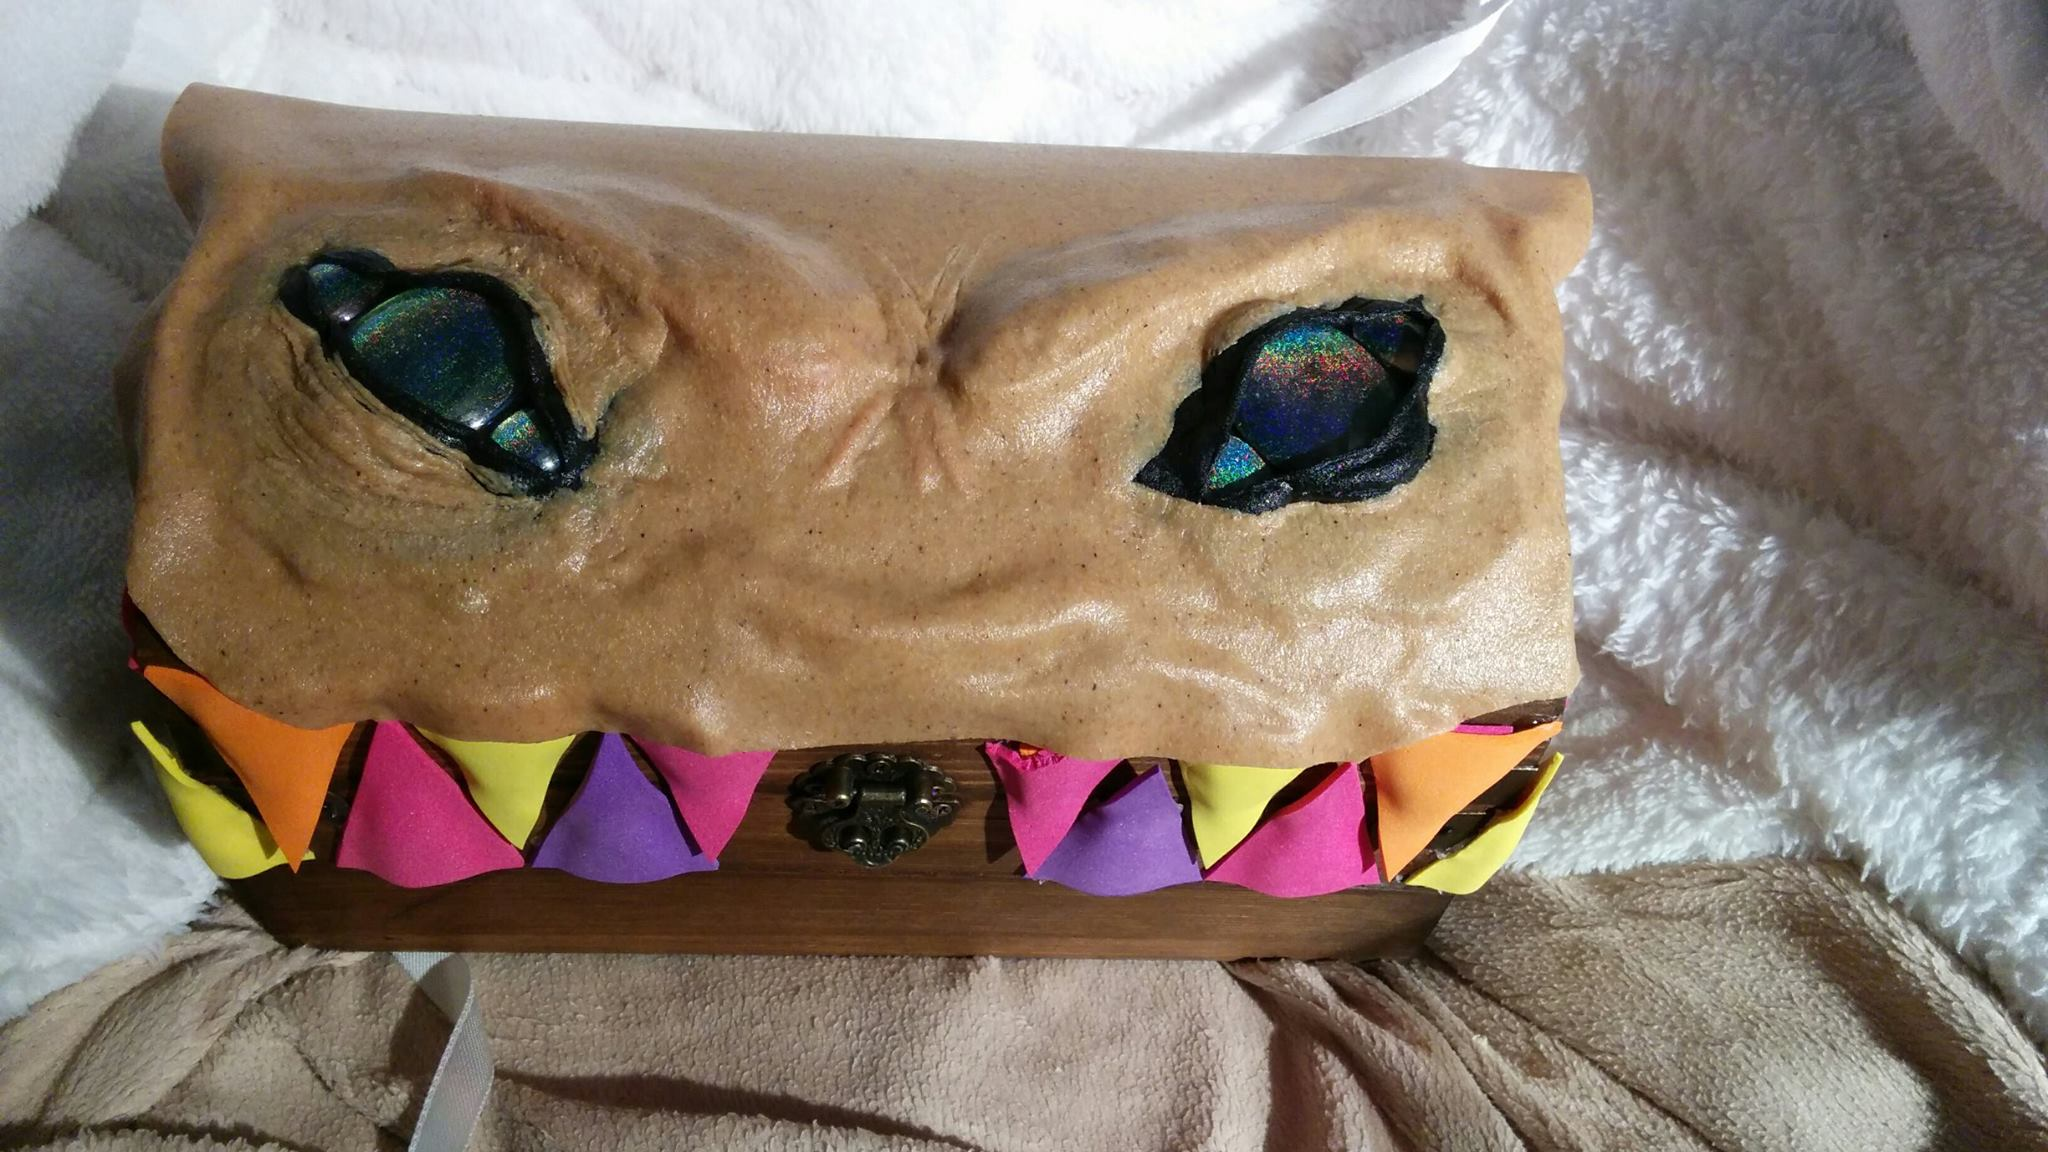 Shape the face until happy with the look. I ended up adding more worbla to the eyes for extra wrinkles.